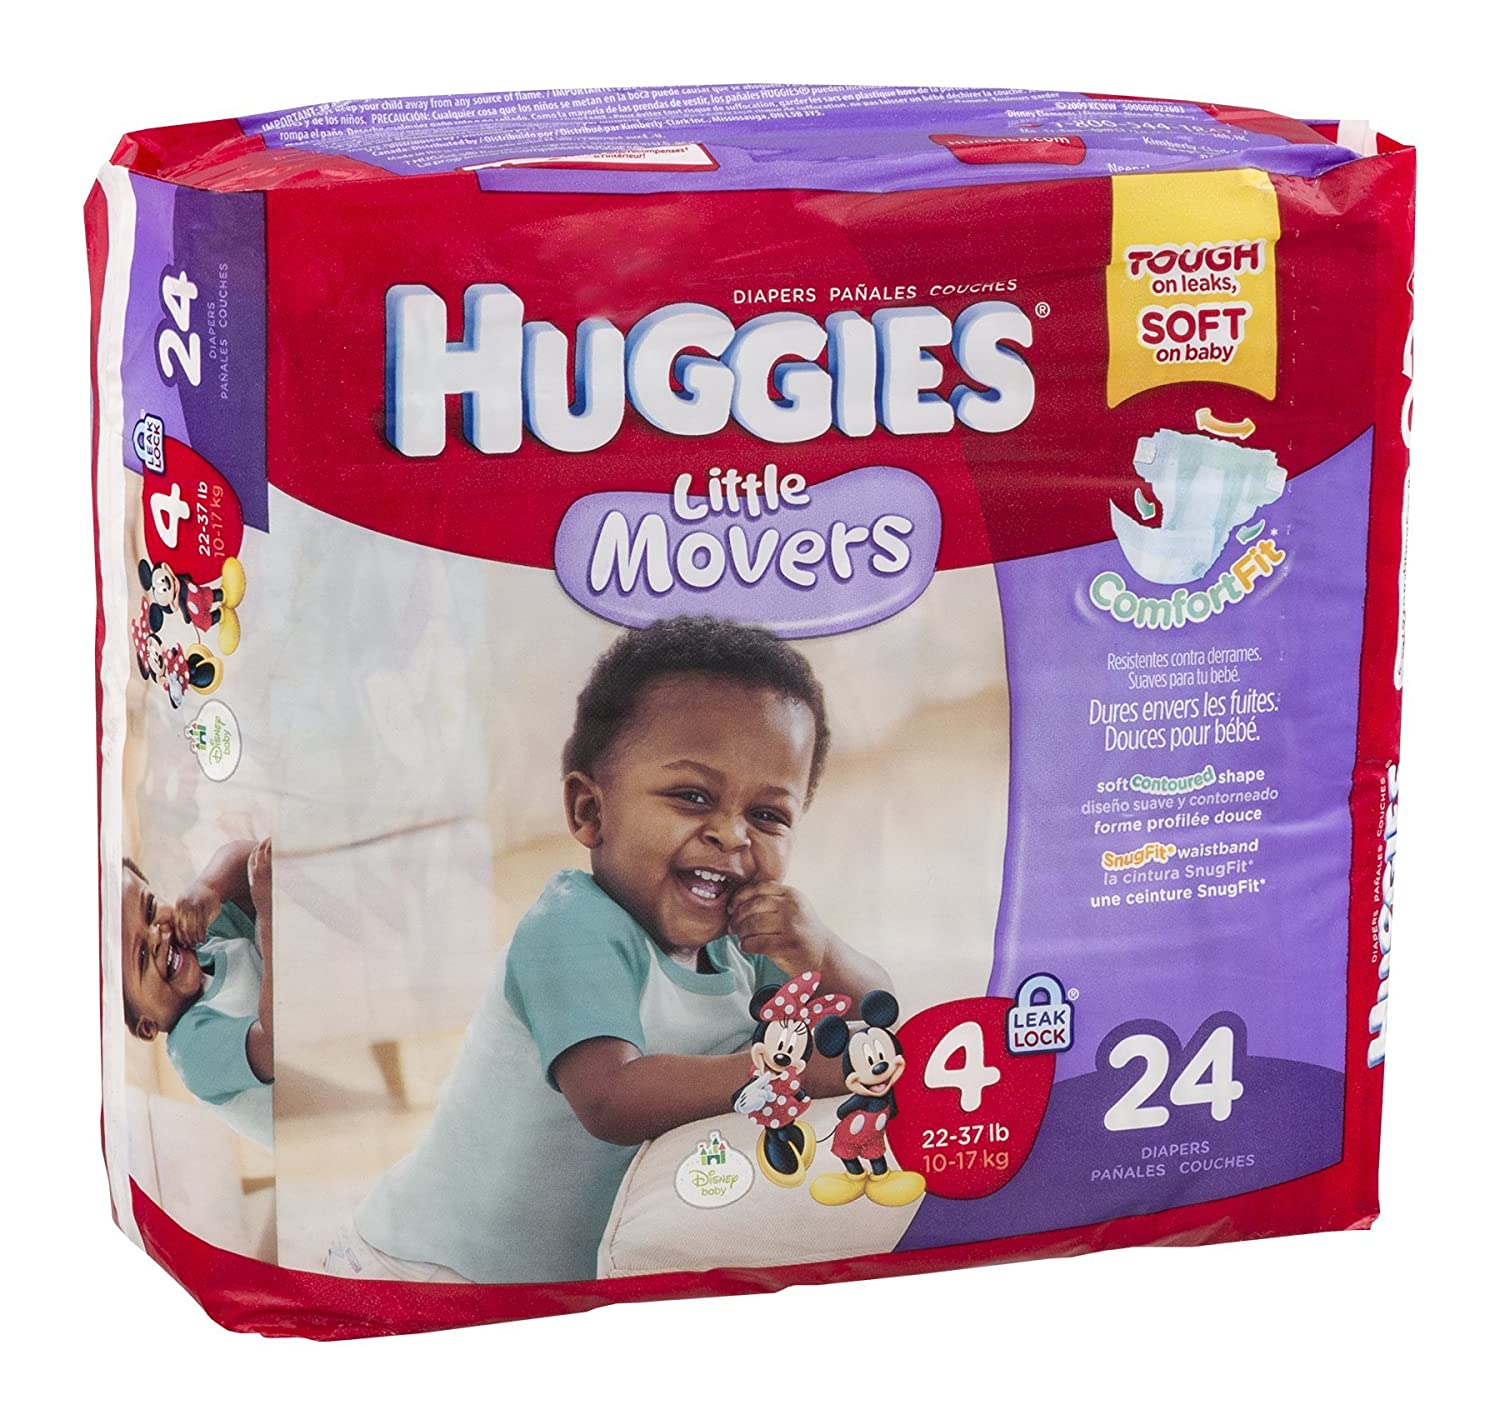 Huggies Diapers Little Movers Disney Size 4 (22-37 lb) 24 CT (Pack of 16)